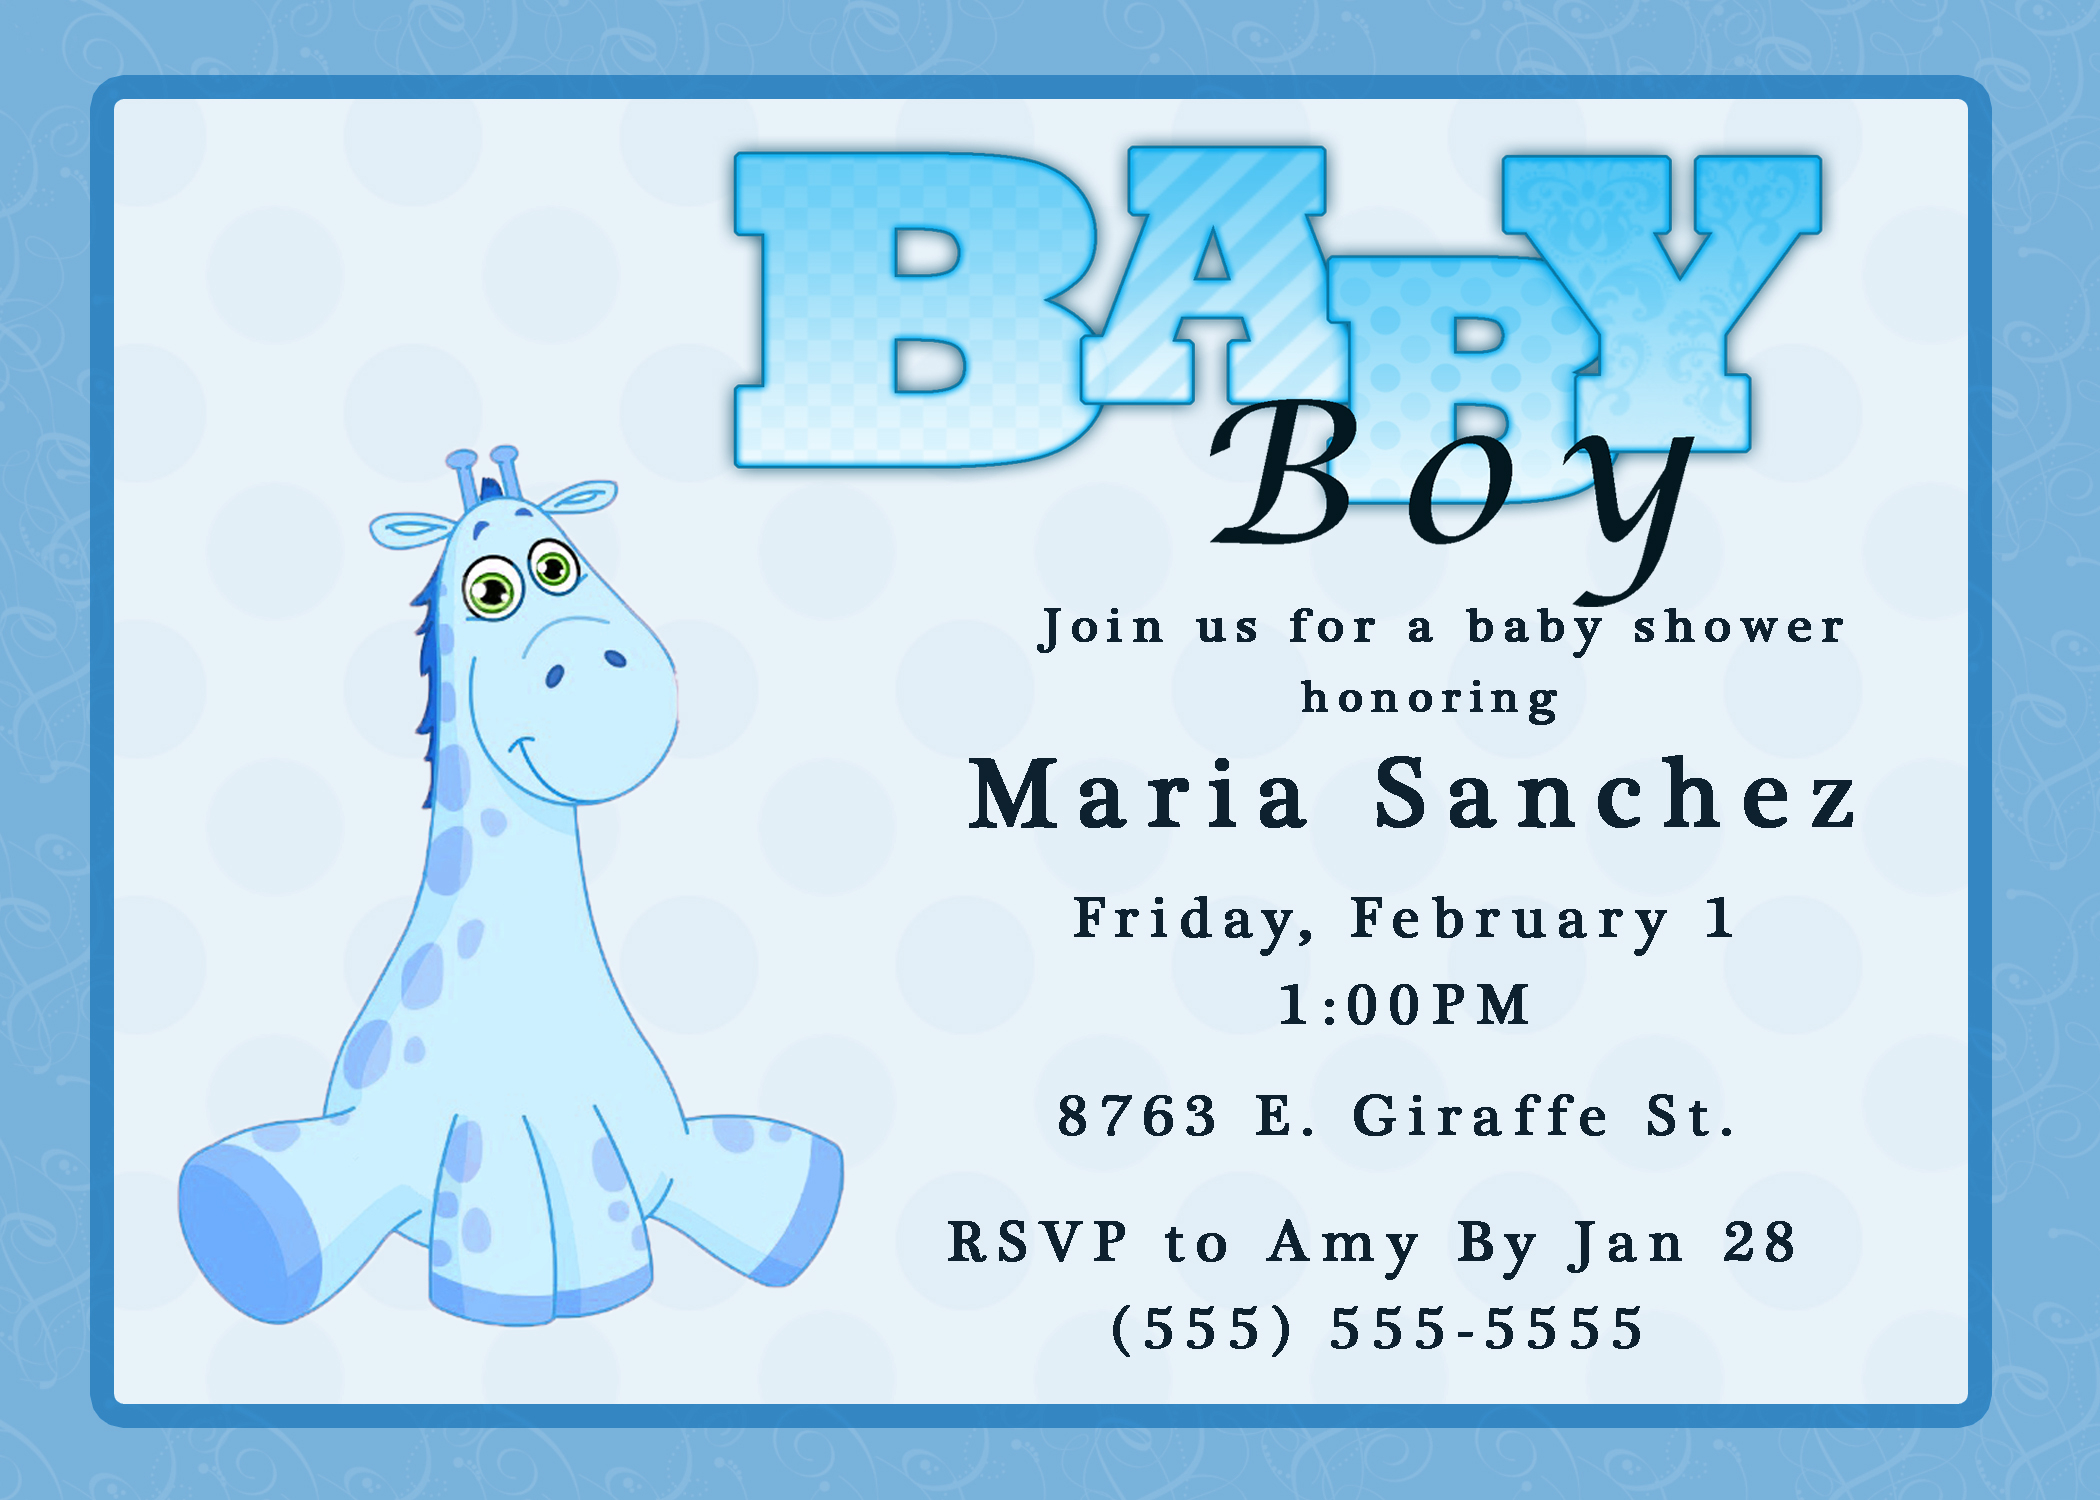 Fancy Giraffe Boy Baby Shower Invitation | Kustom Kreations for New Baby Boy Baby Shower Invitations